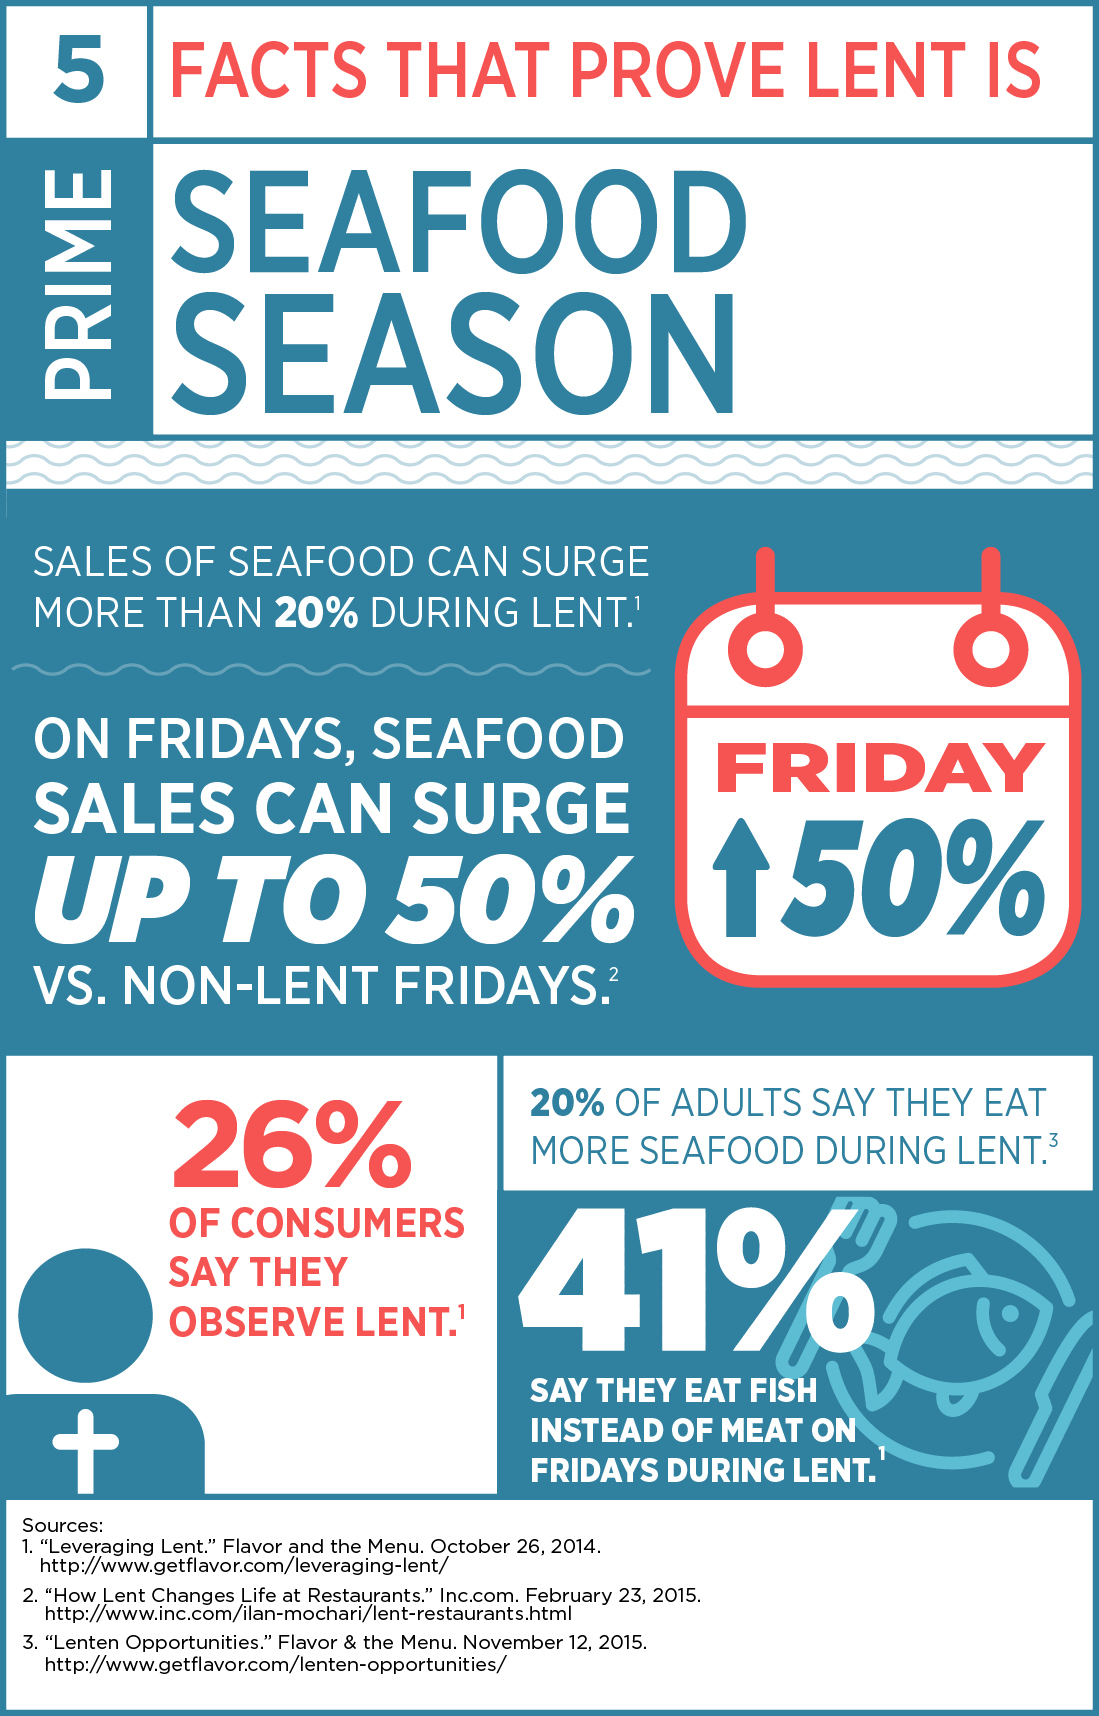 Numbers that show how popular seafood is during Lent.